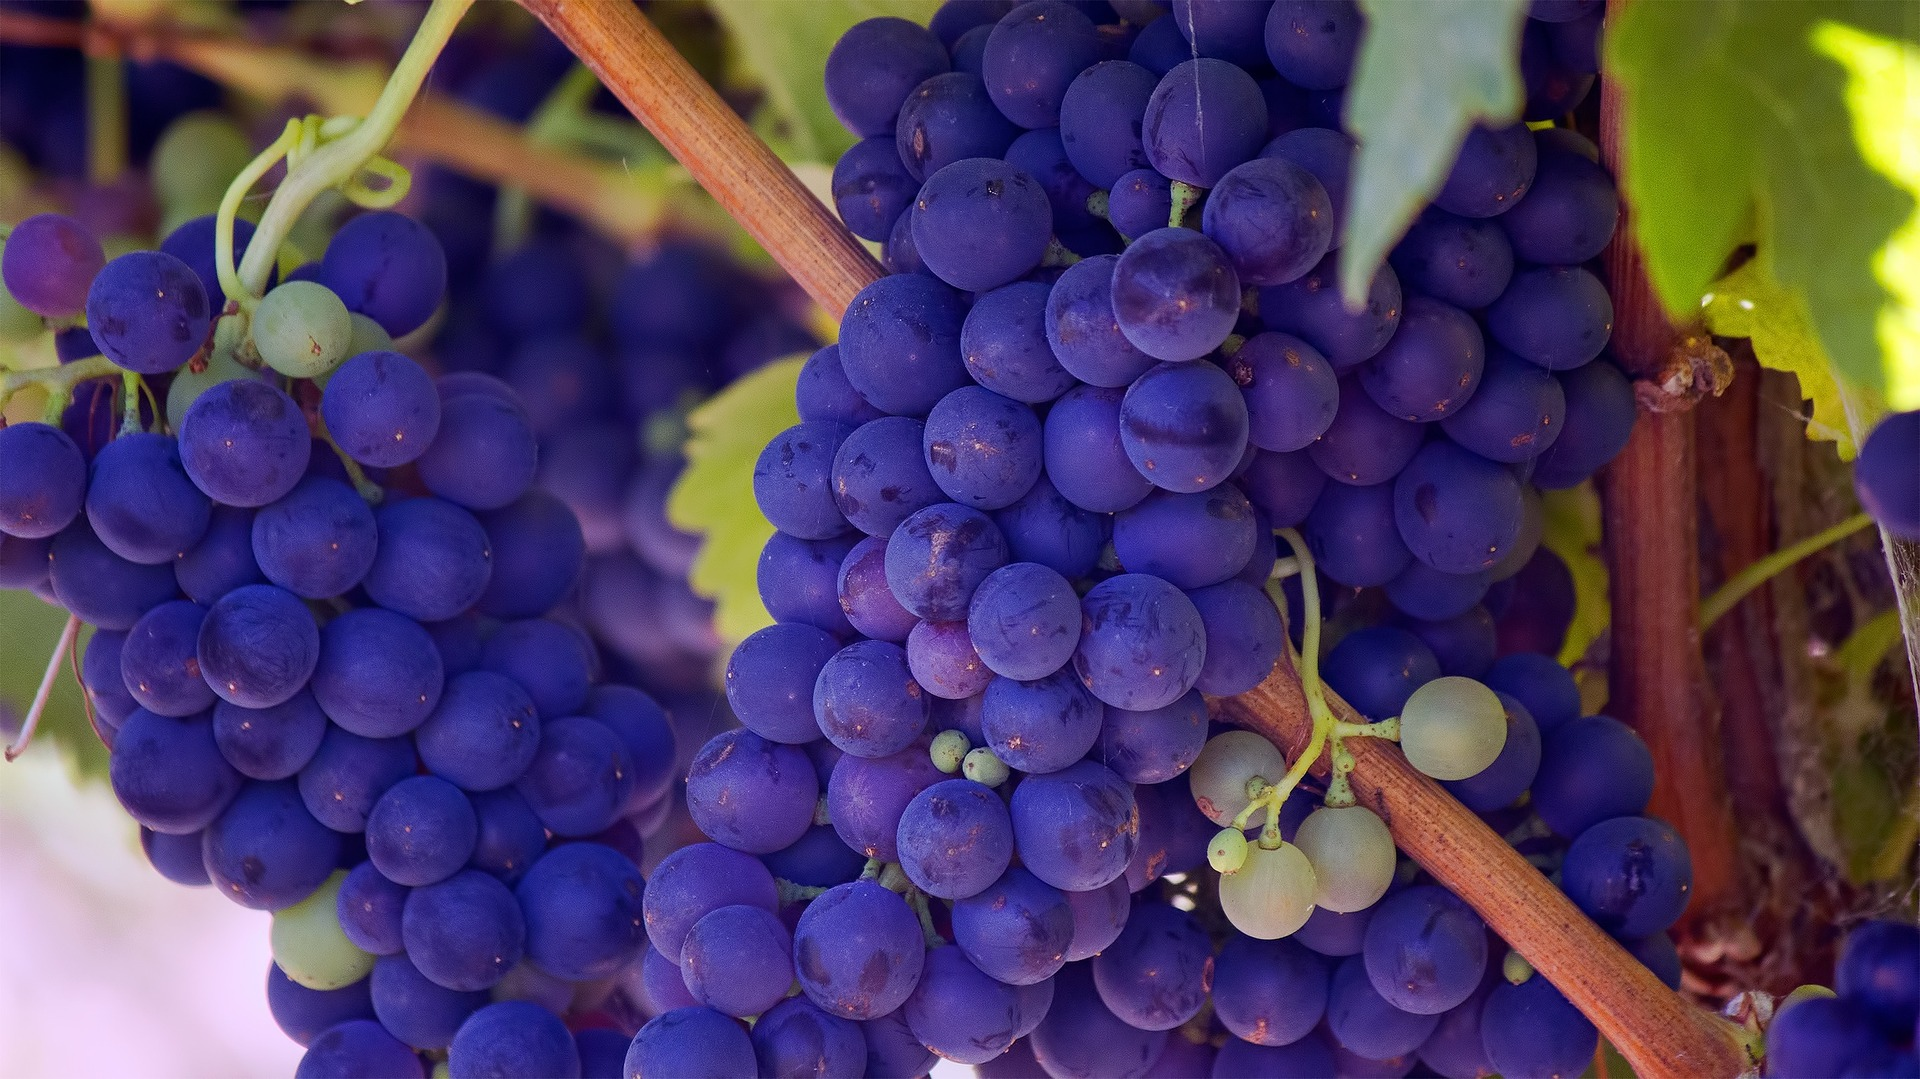 Benefits of Grapes. grapes. www.blisslife.in